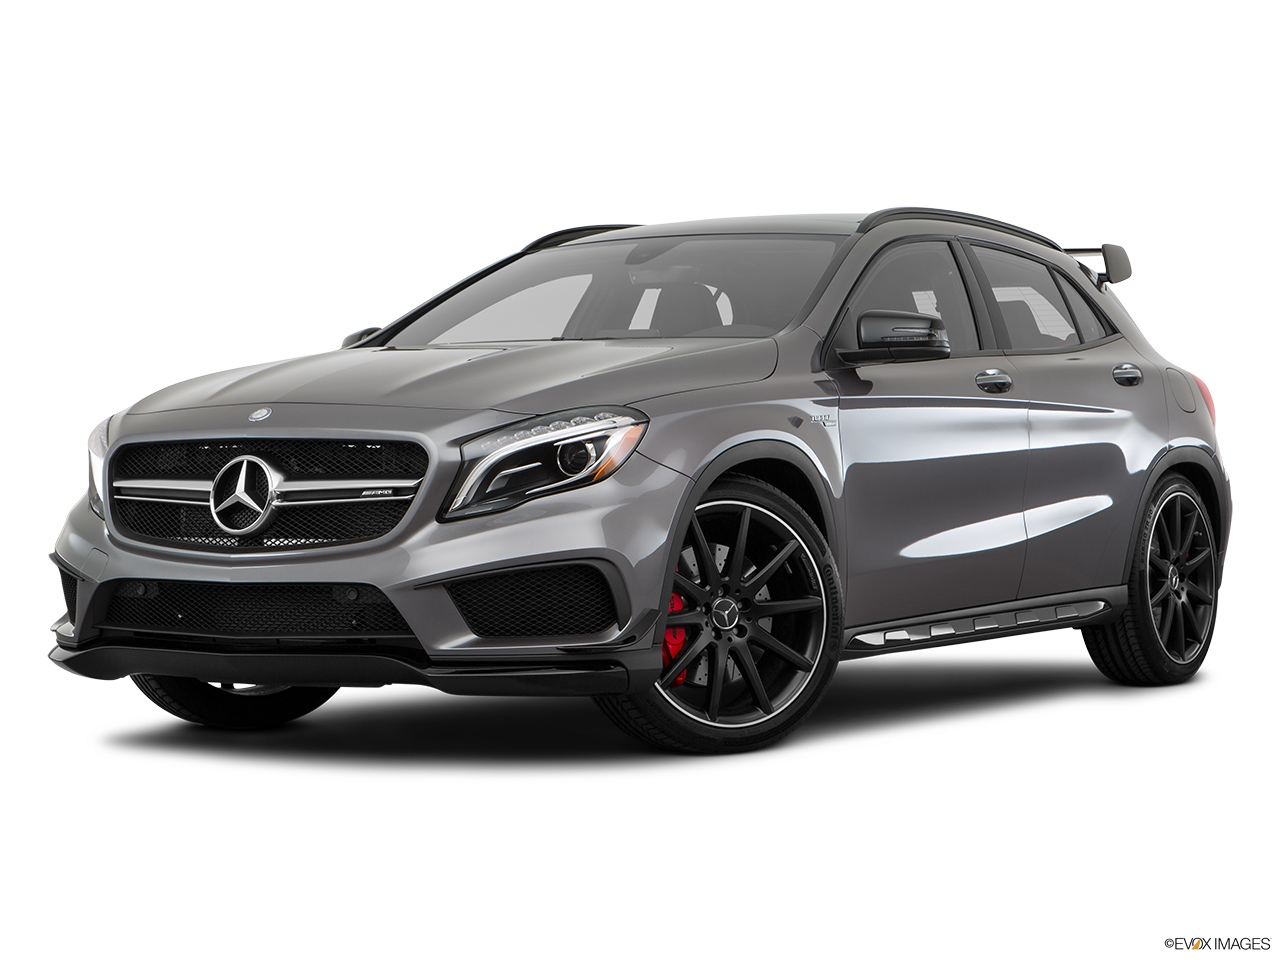 Car pictures list for mercedes benz gla 2016 45 amg qatar for Mercedes benz insurance